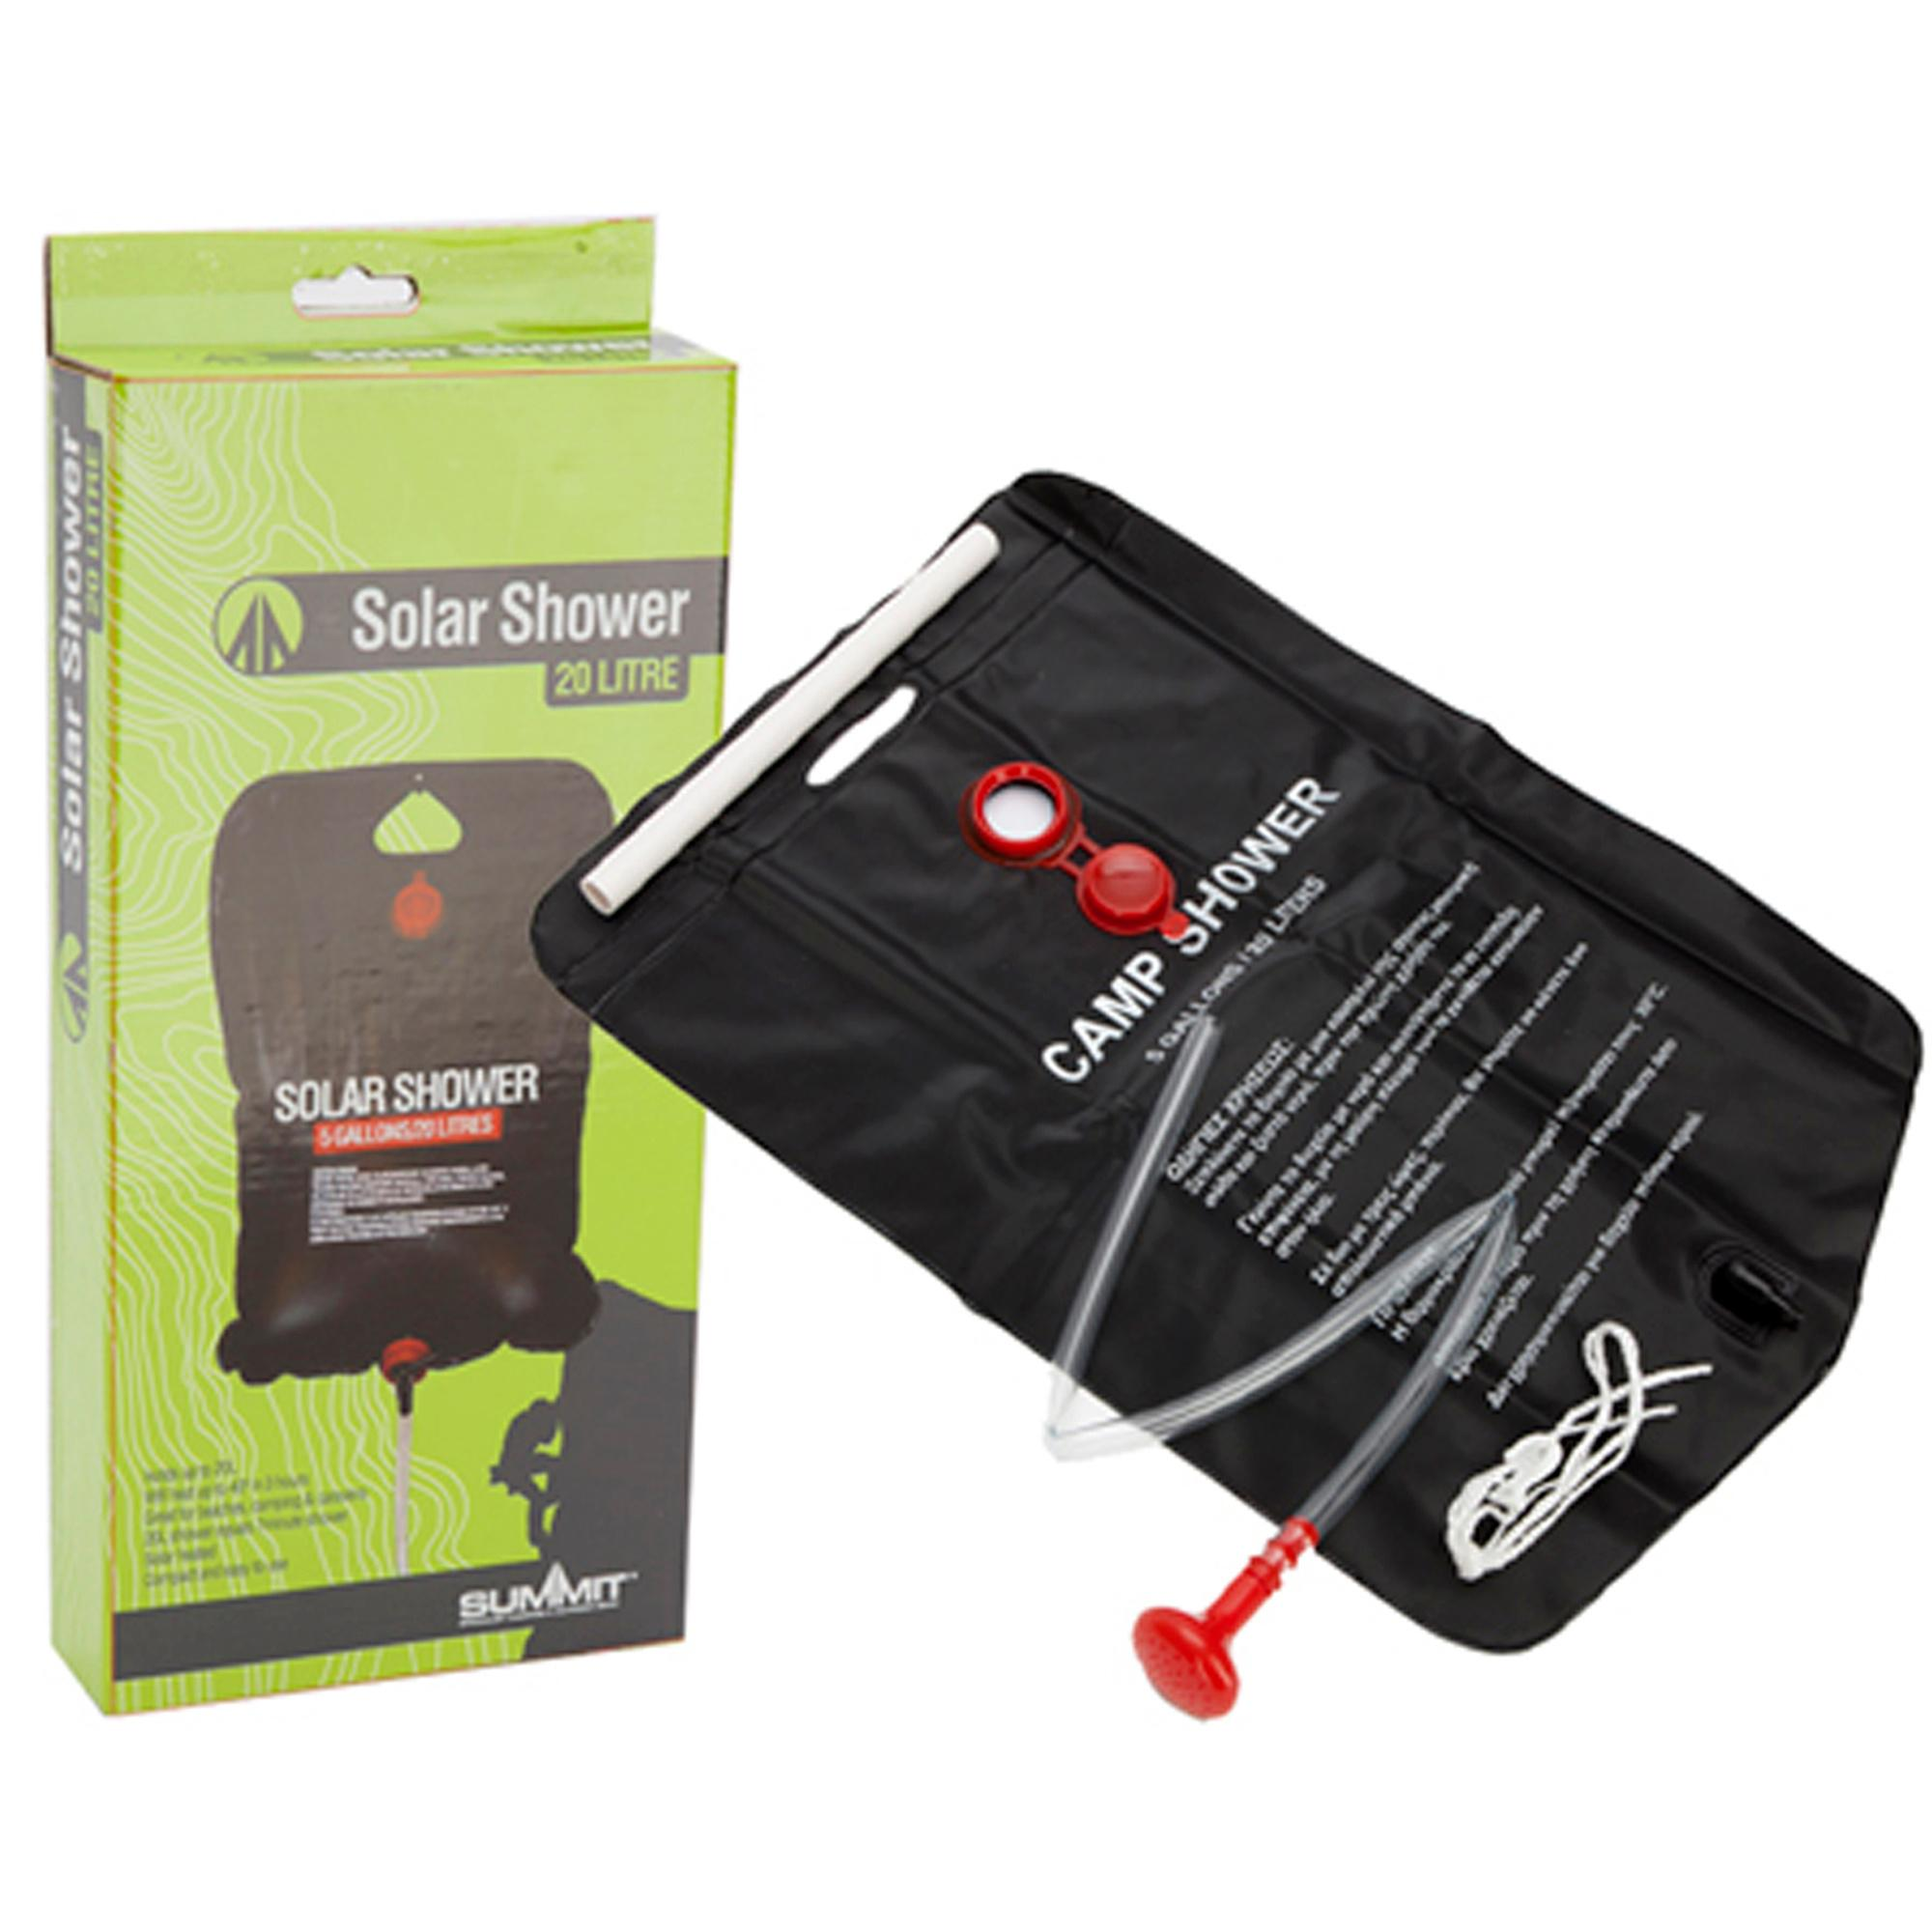 Summit Solar Shower Multi